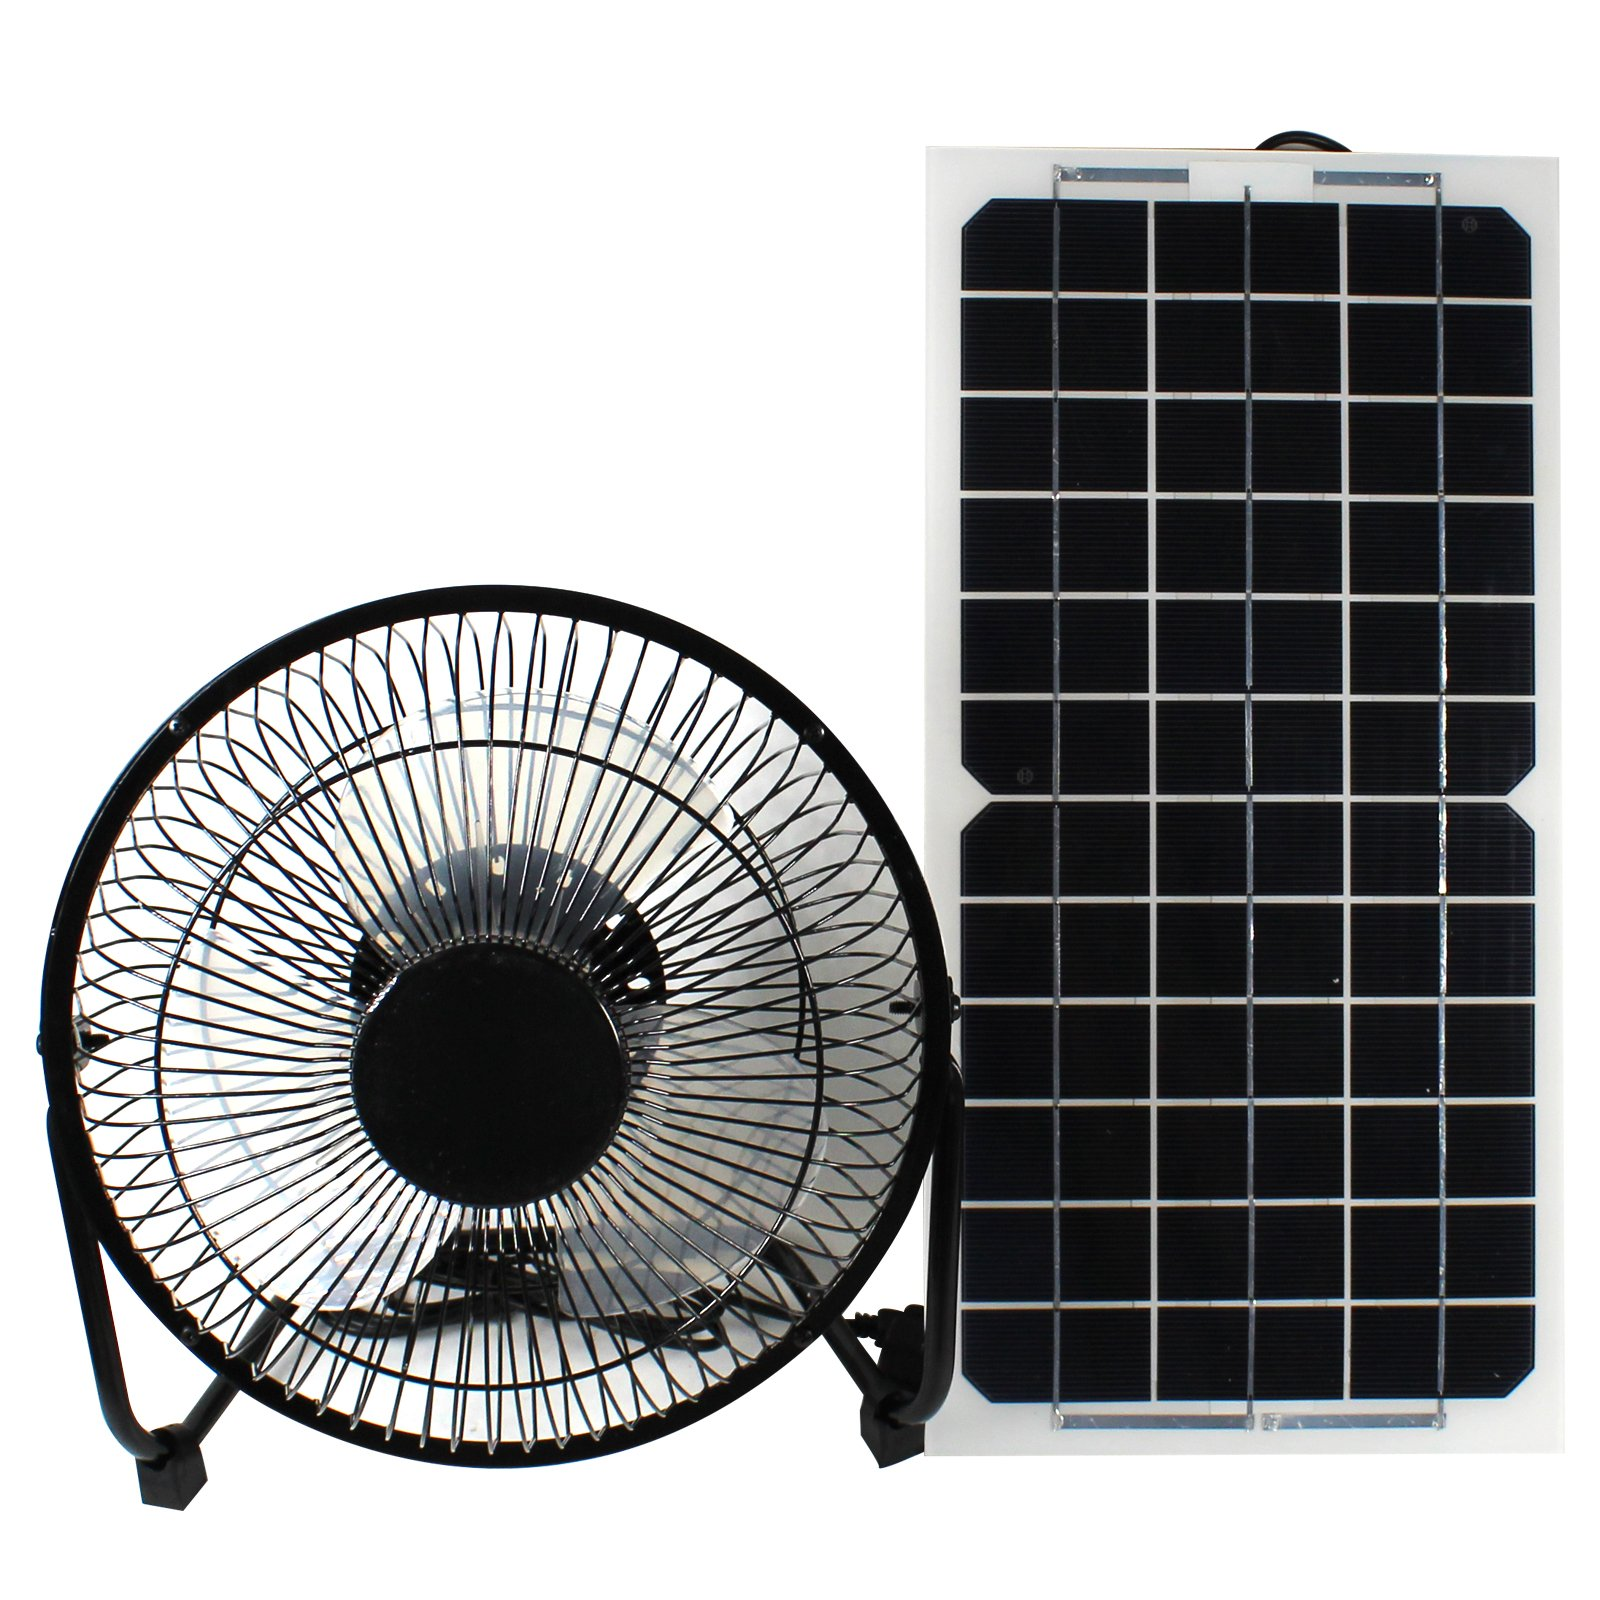 GOODSOZ 10W 12V Solar Panel Powered Fan Ventilator for RV Trailer Chicken House Dog House Roof Vent Multi-functional Charger